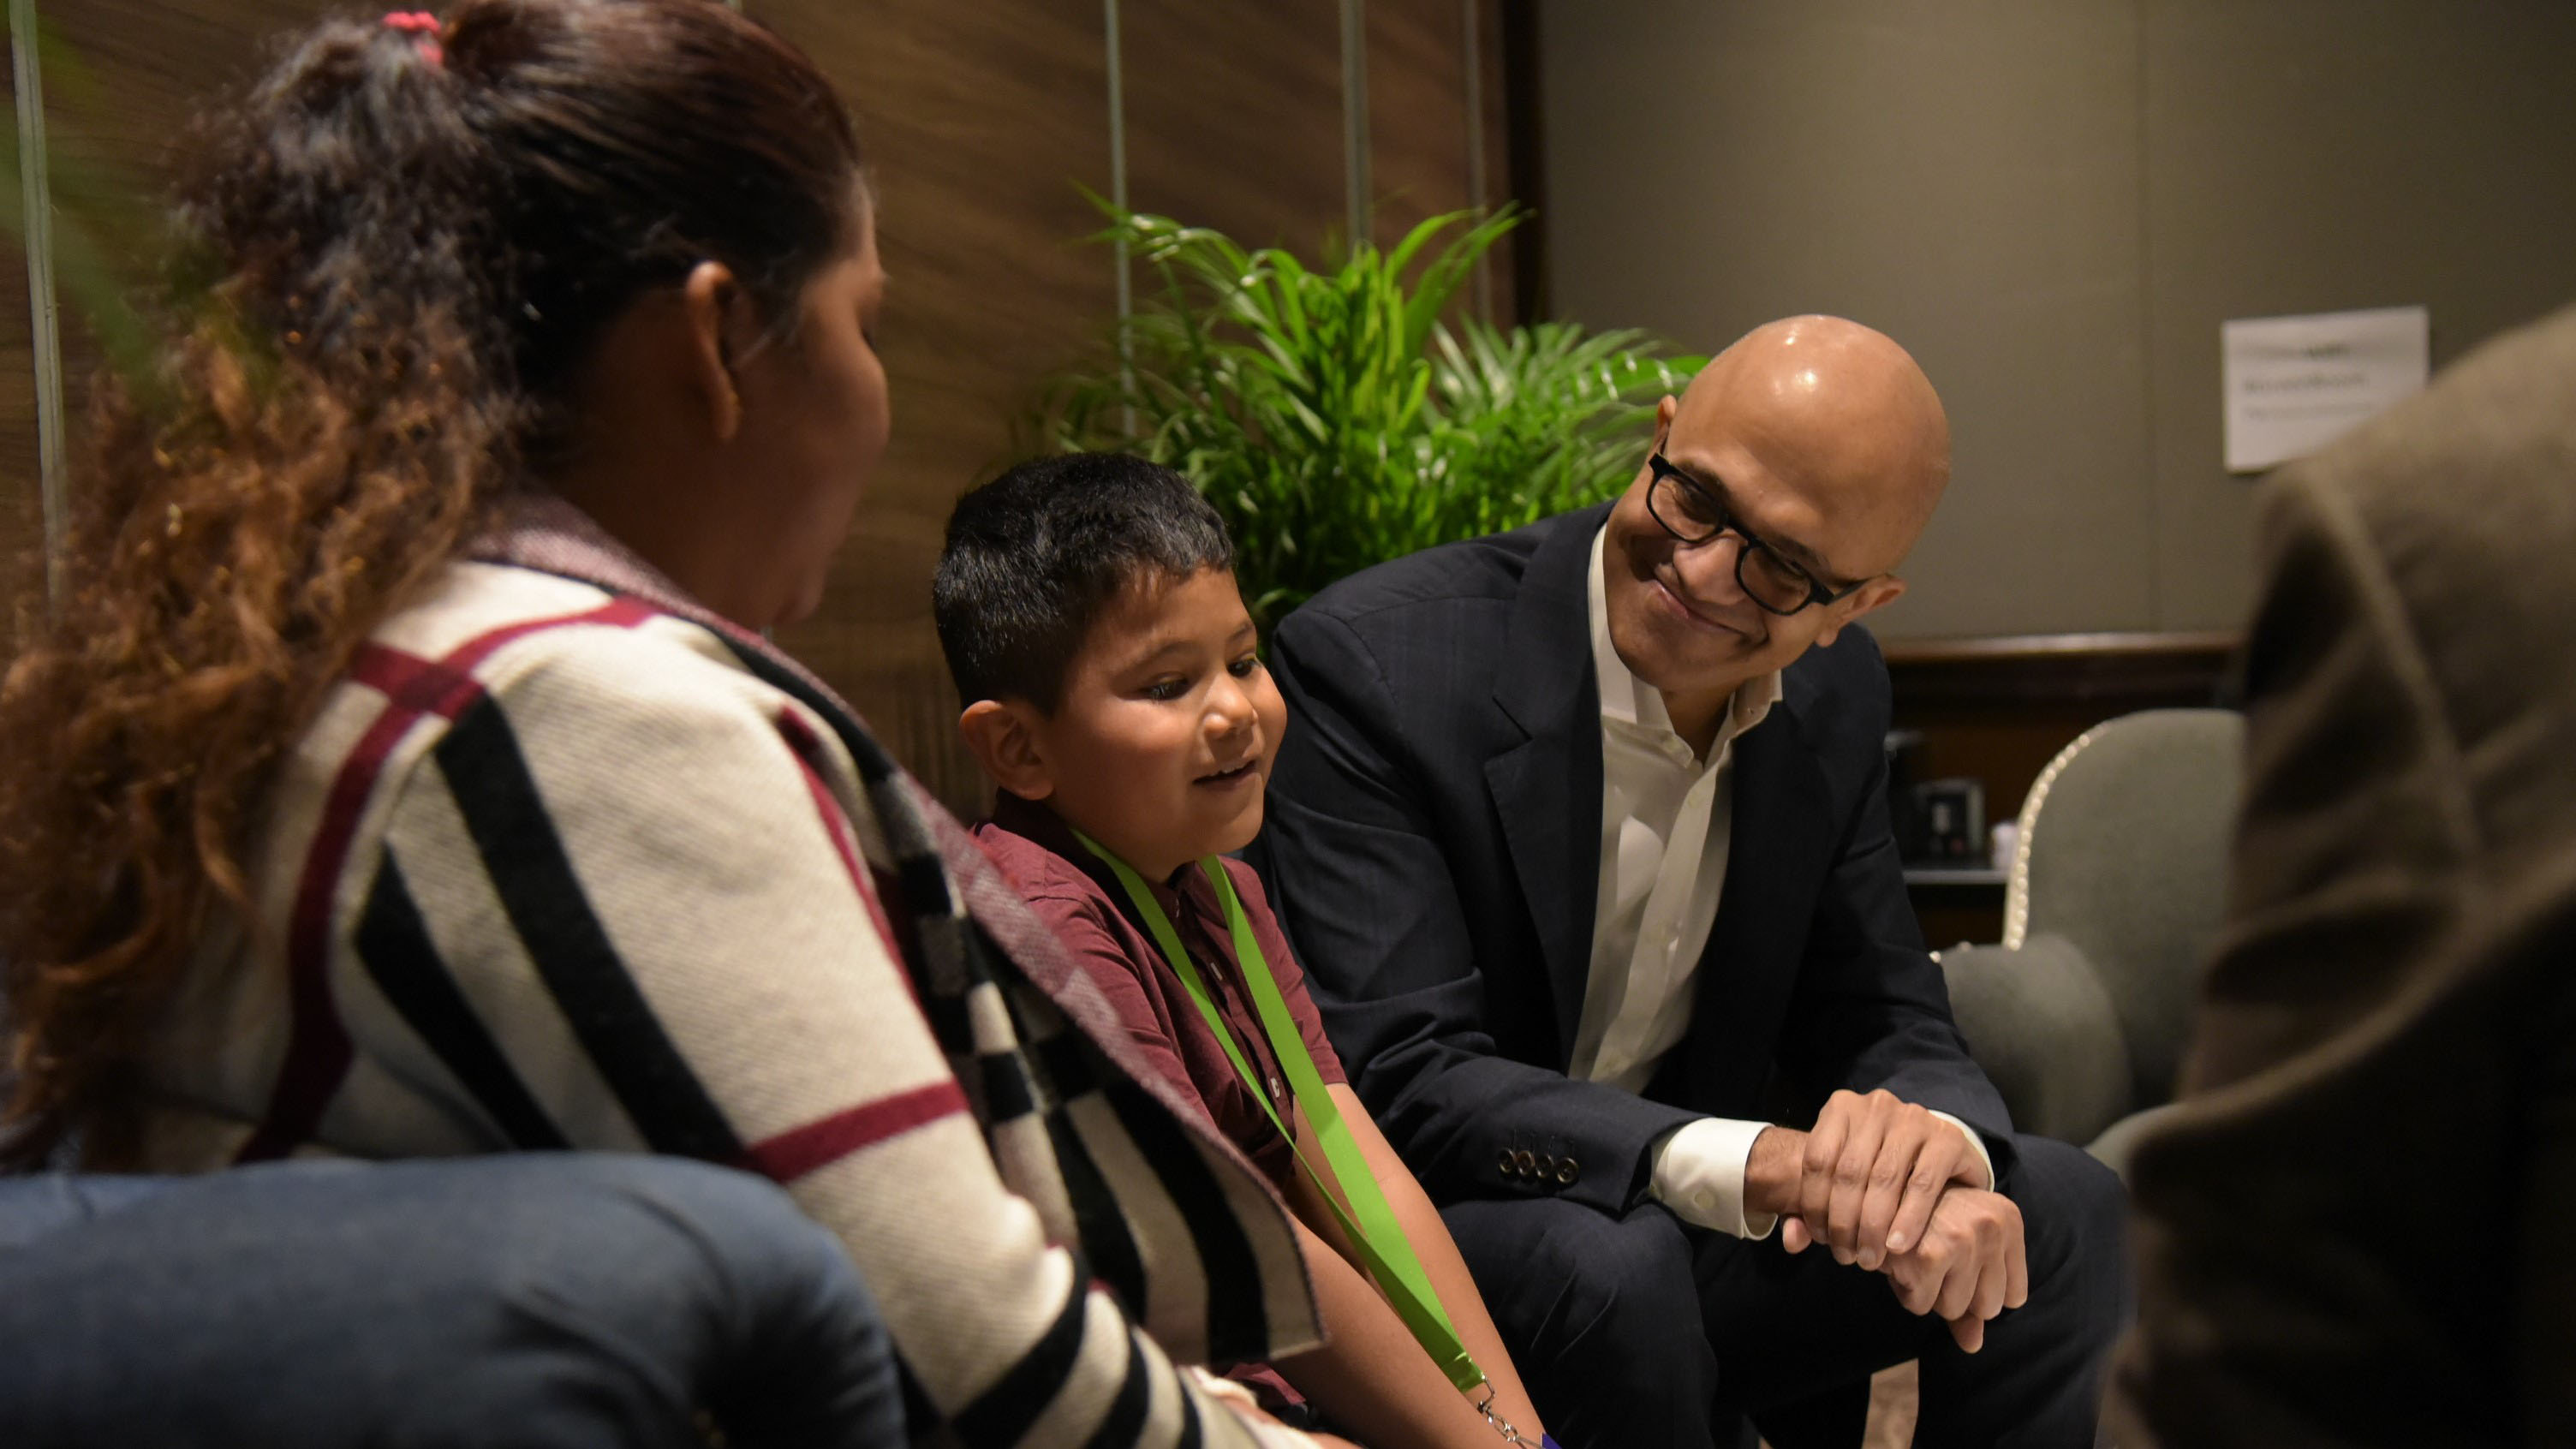 A boy sits next to Microsoft CEO Satya Nadella, who is listening to him talk and smiling